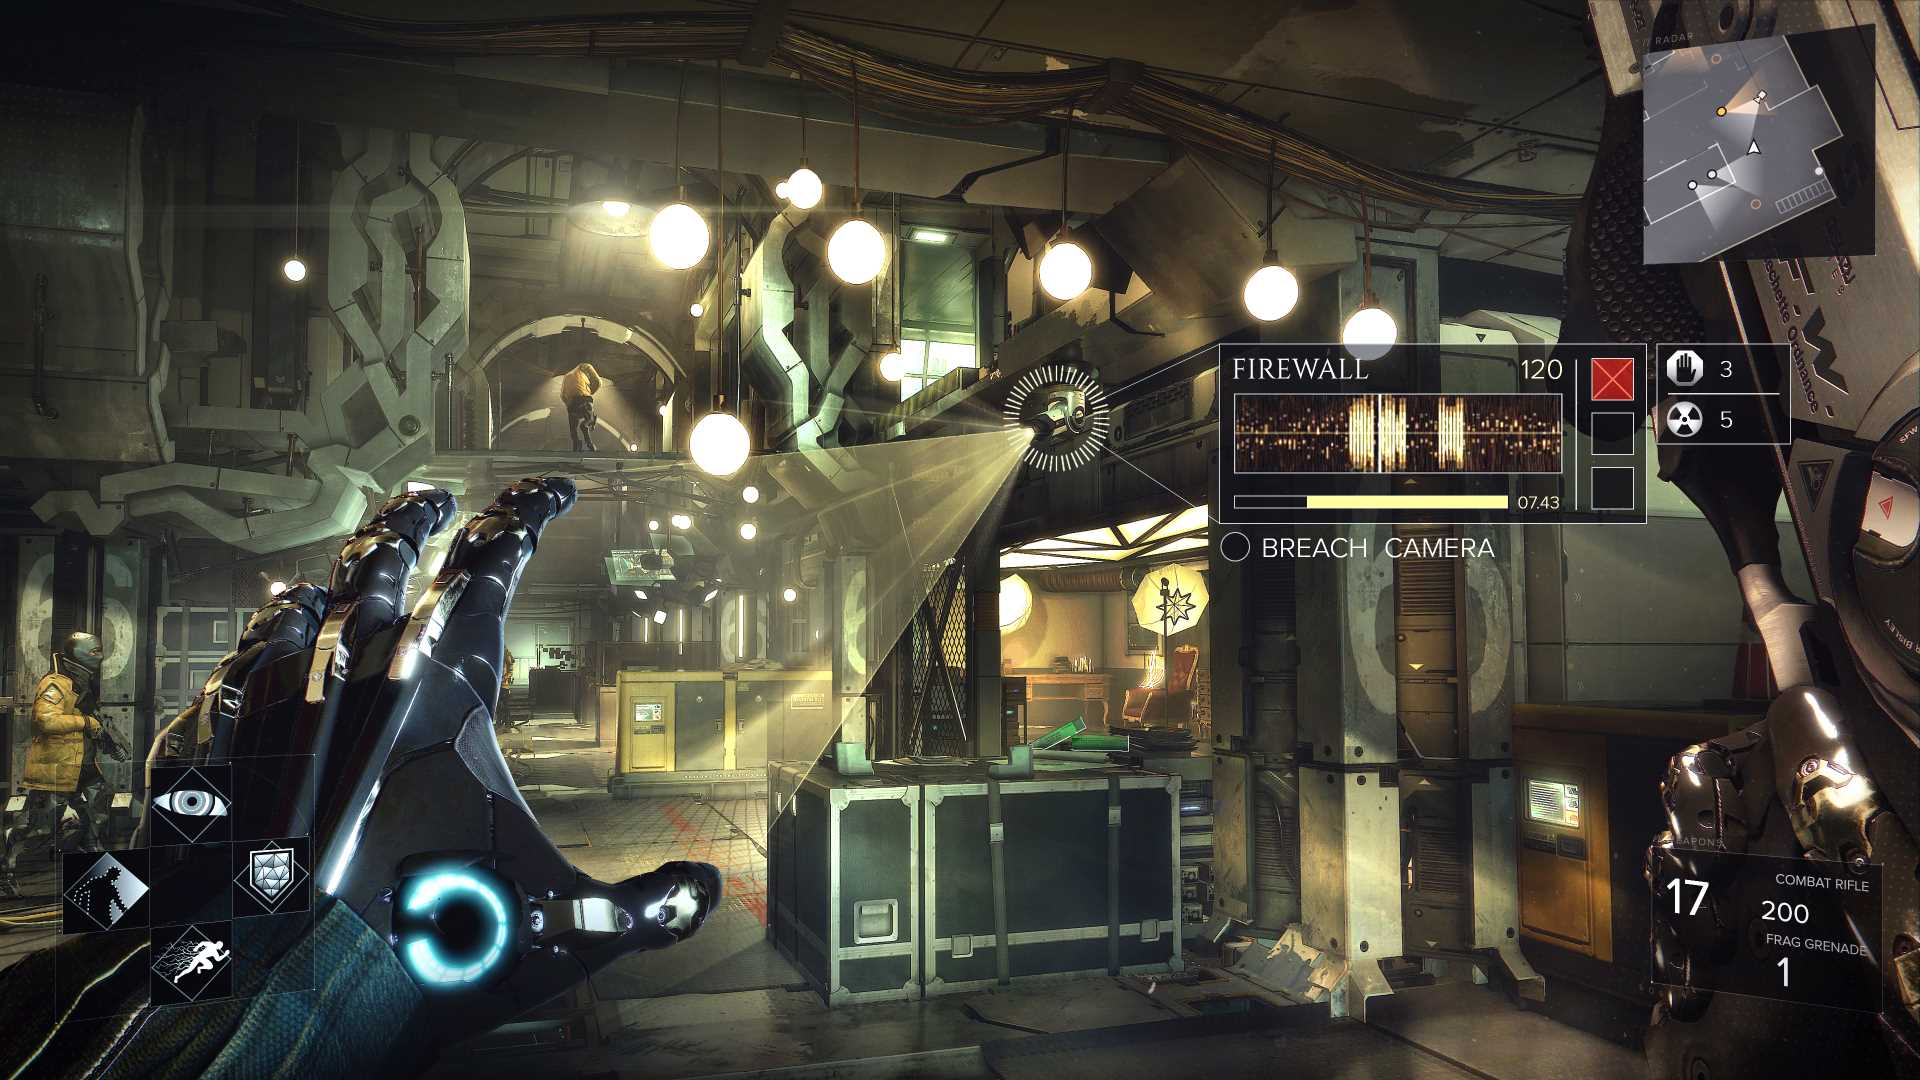 Deus Ex Mankind Divided remote hacking